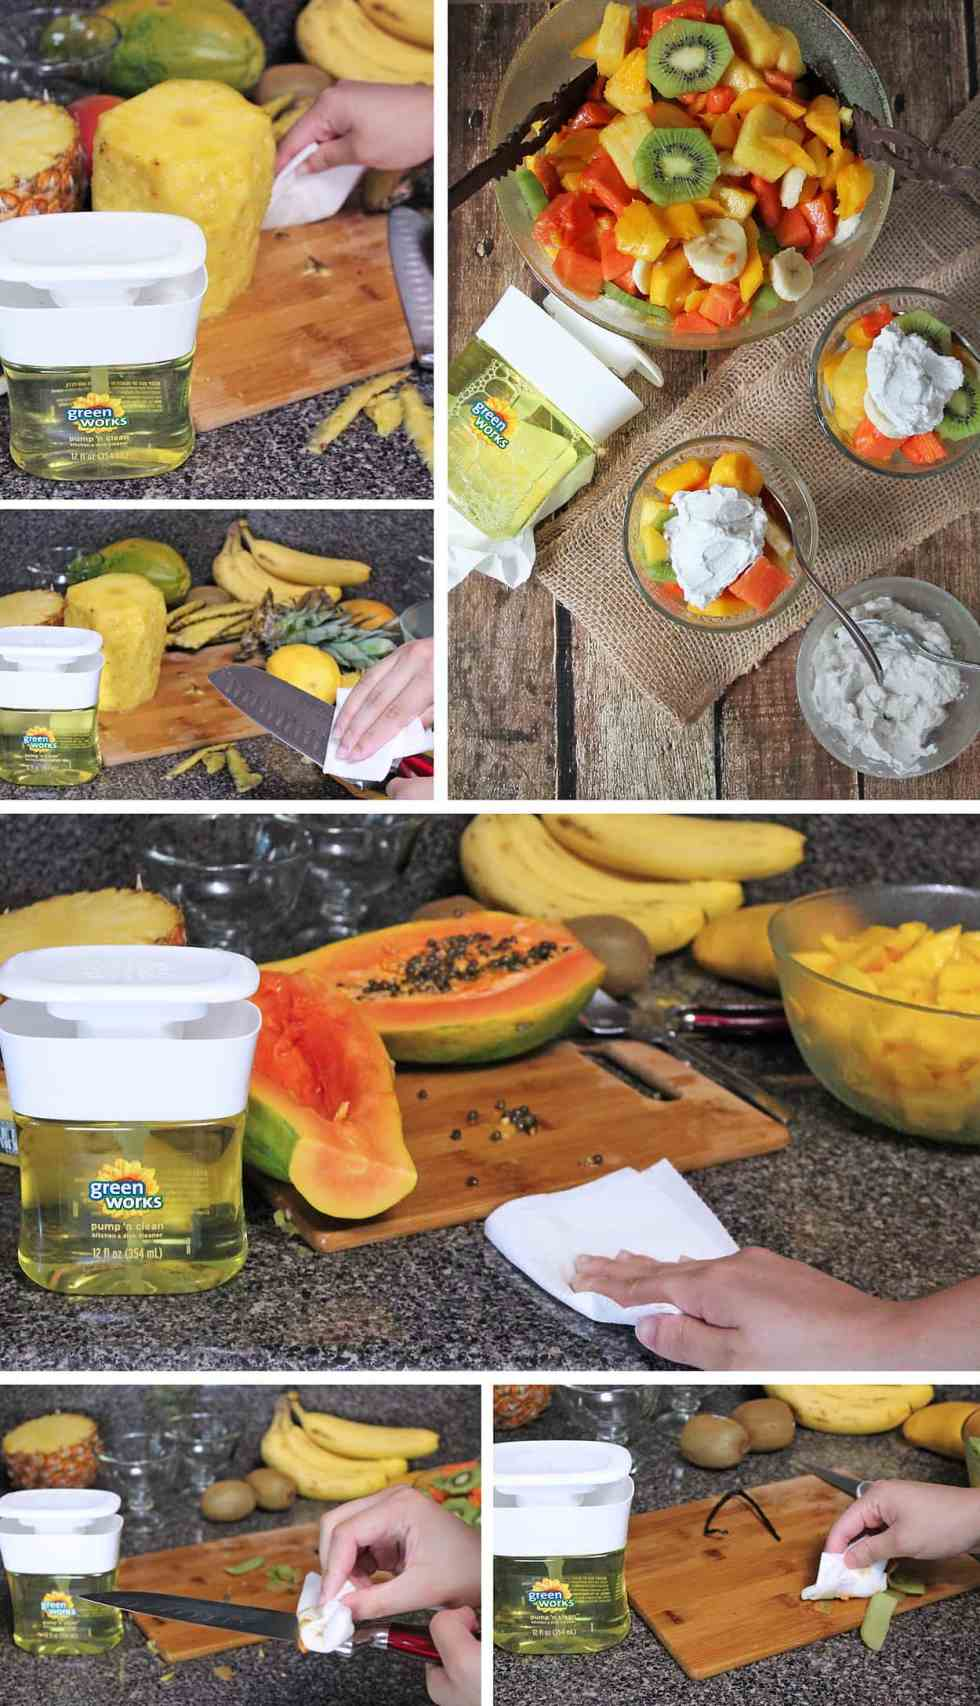 Clean-Up While Making SriLankan Style Fruit Salad #NaturallyClean